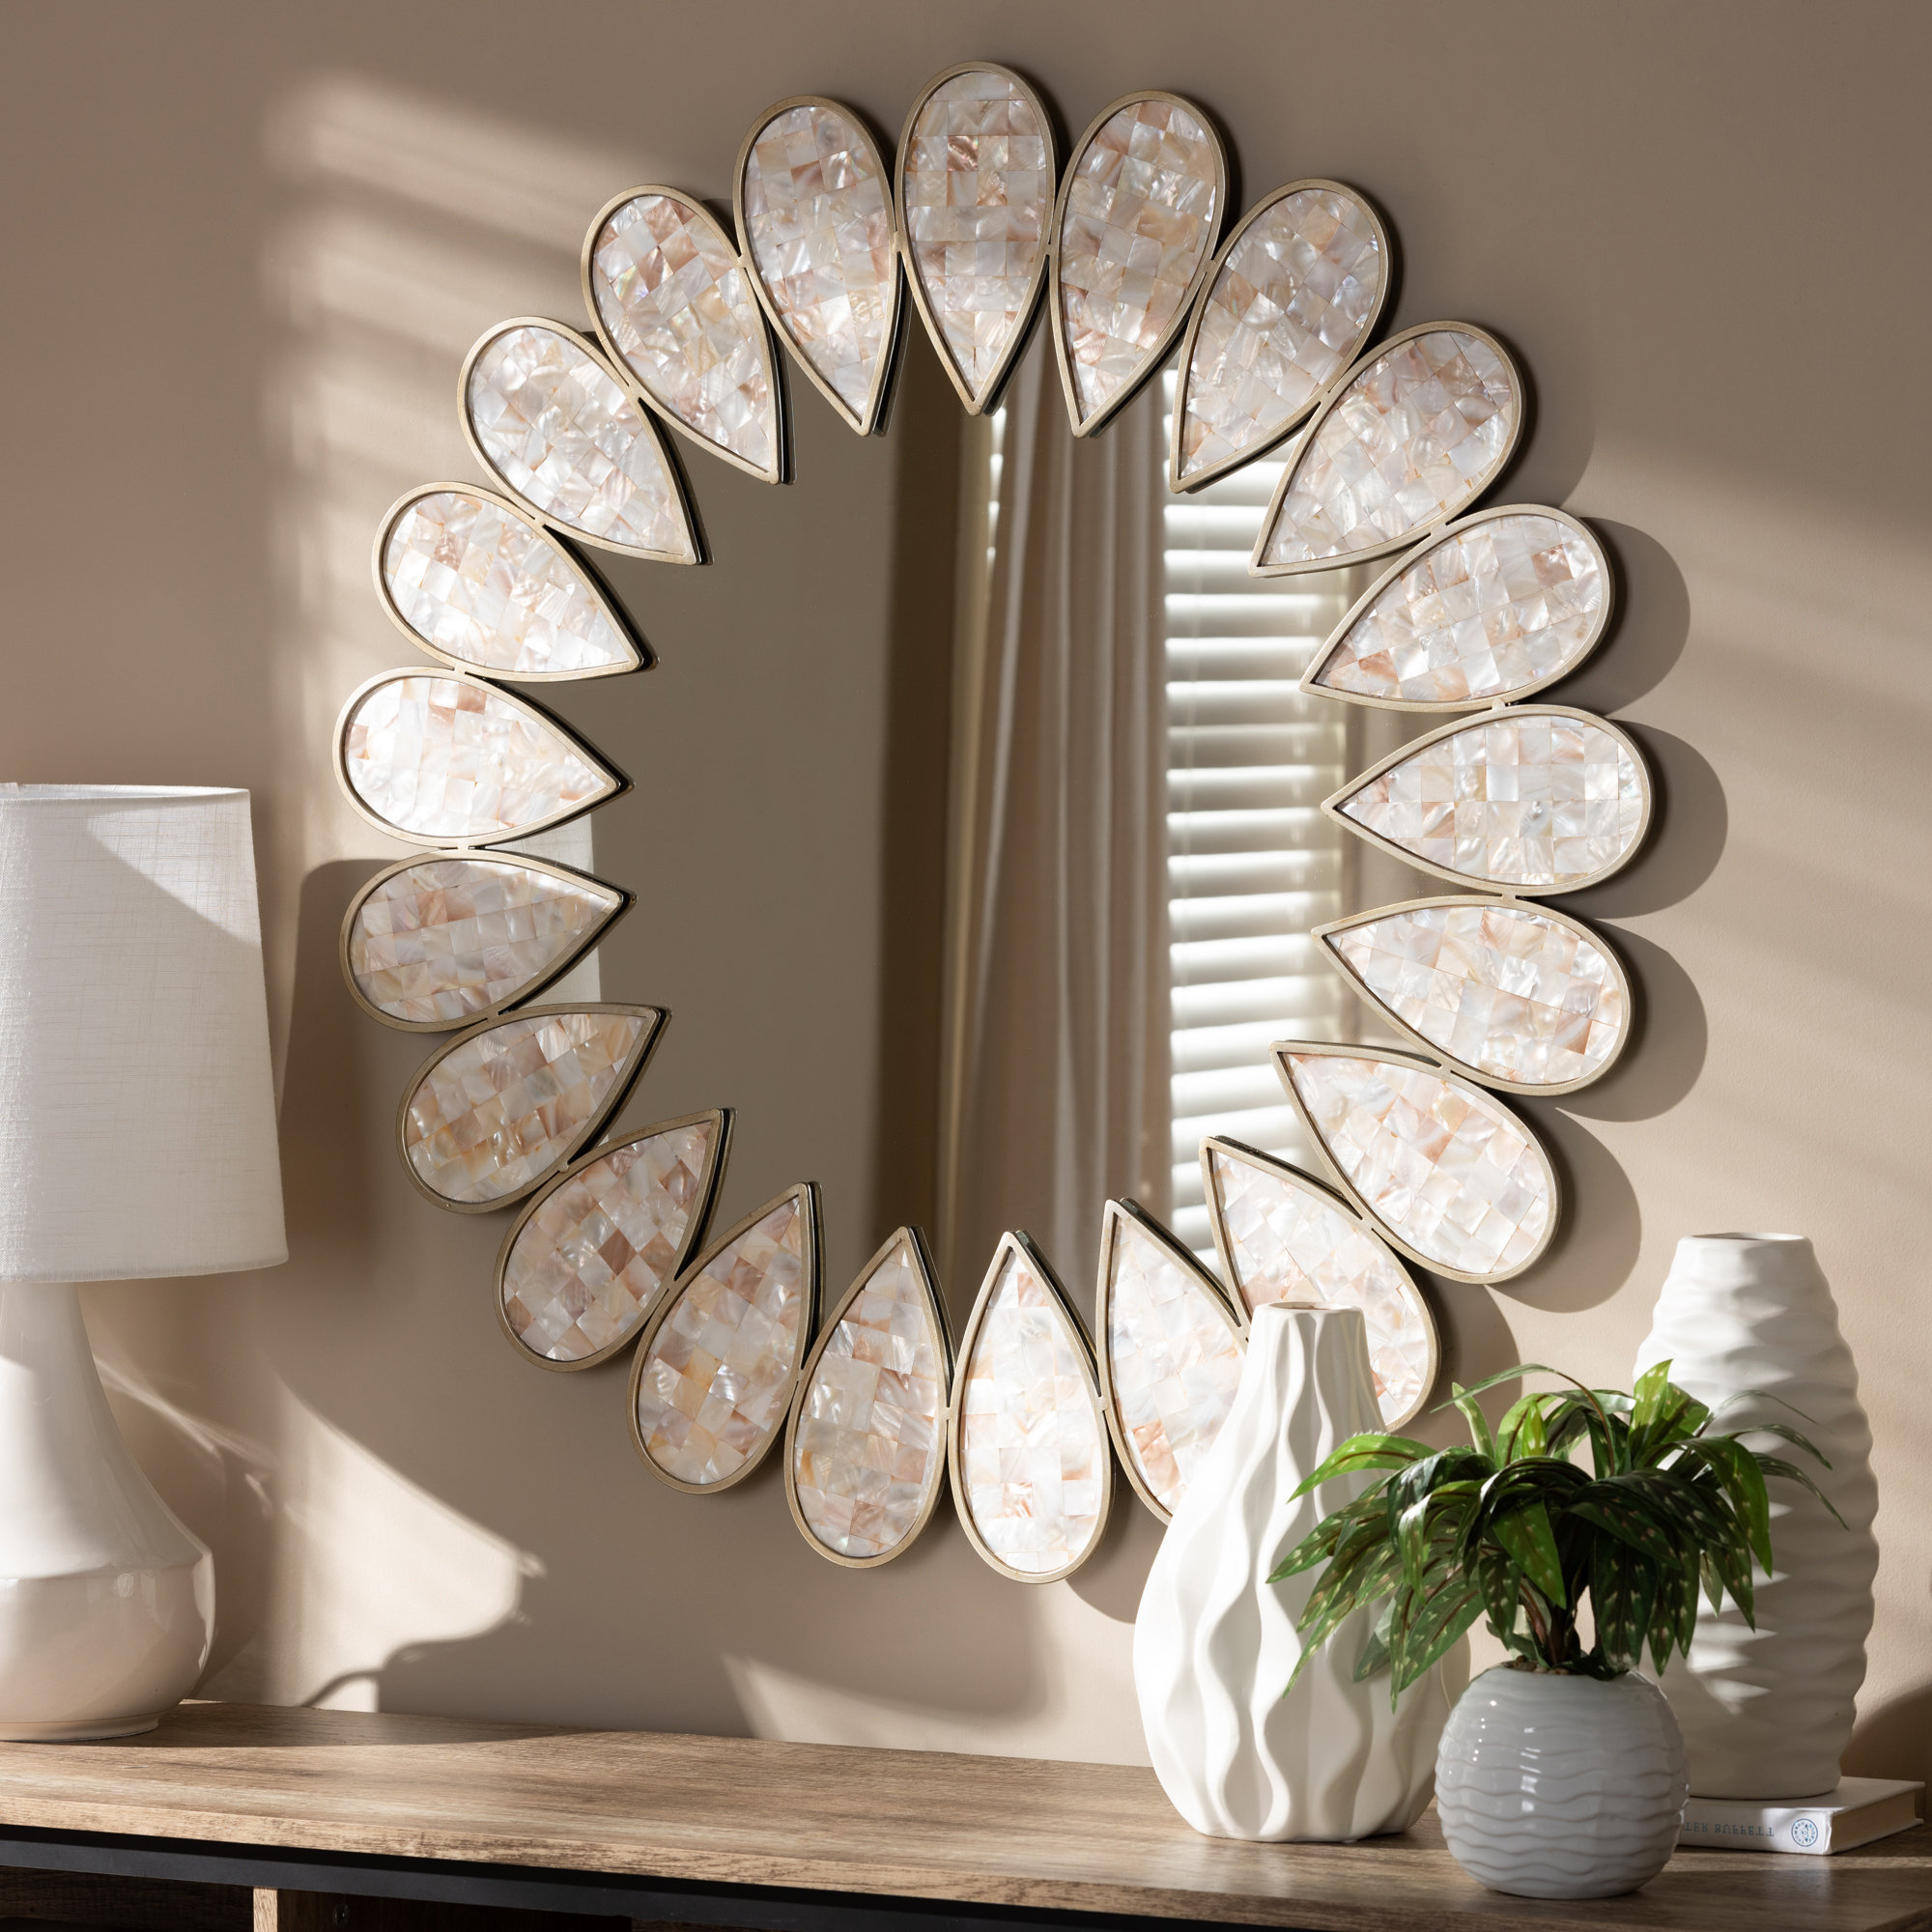 Migdalia Wall Mirror Pertaining To Polen Traditional Wall Mirrors (View 8 of 30)